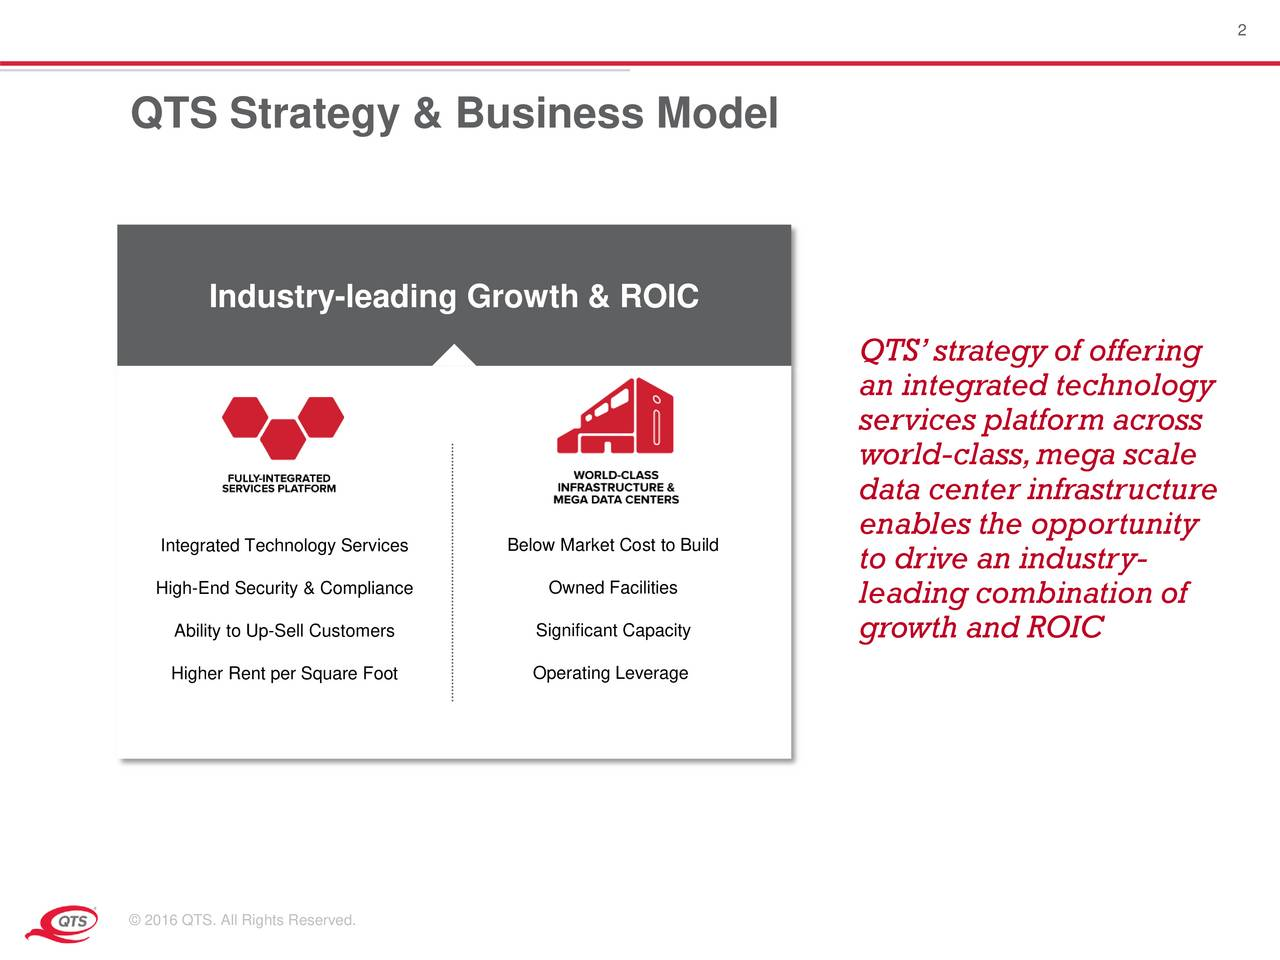 QTS Strategy & Business Model Industry-leading Growth & ROIC QTSstrategy of offering an integrated technology services platform across world-class,mega scale data center infrastructure enables the opportunity Integrated Technology ServicesBelow Market Cost to Build to drive an industry- Owned Facilities High-End Security & Compliance leading combination of Ability to Up-Sell Customers Significant Capacity growth and ROIC Higher Rent per Square Foot Operating Leverage 2016 QTS. All Rights Reserved.